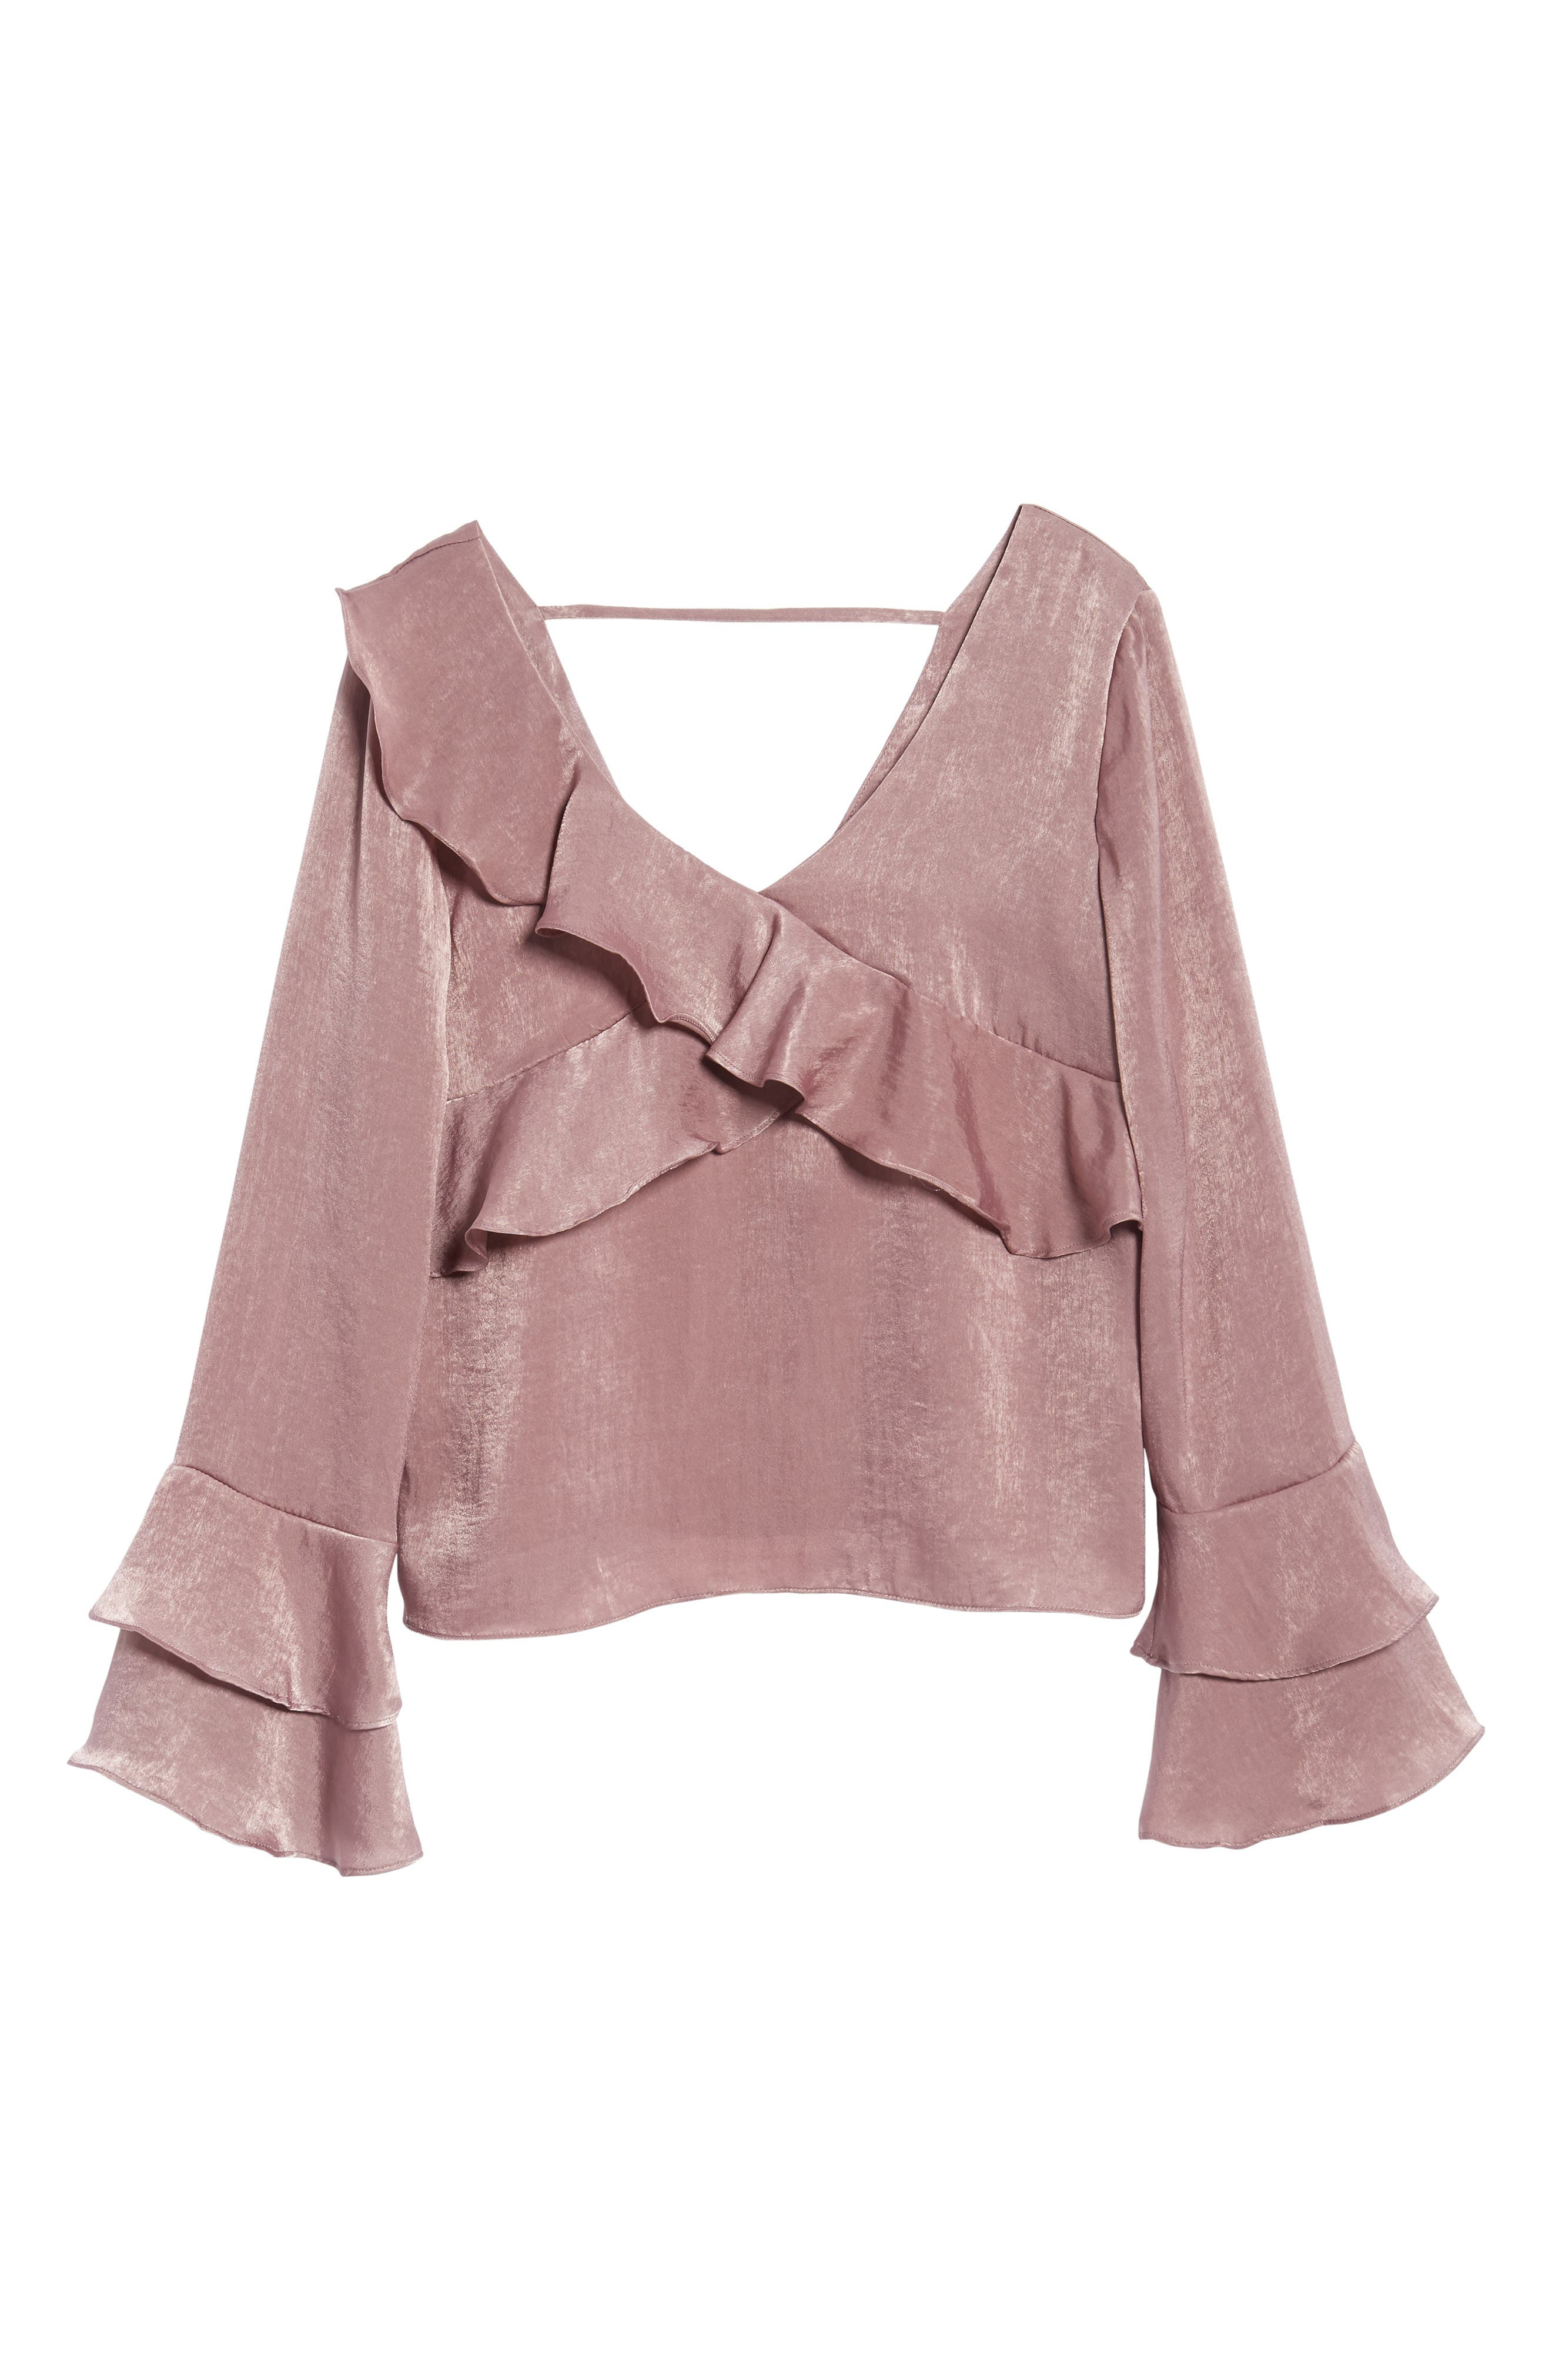 Ruffle Top,                             Alternate thumbnail 6, color,                             530